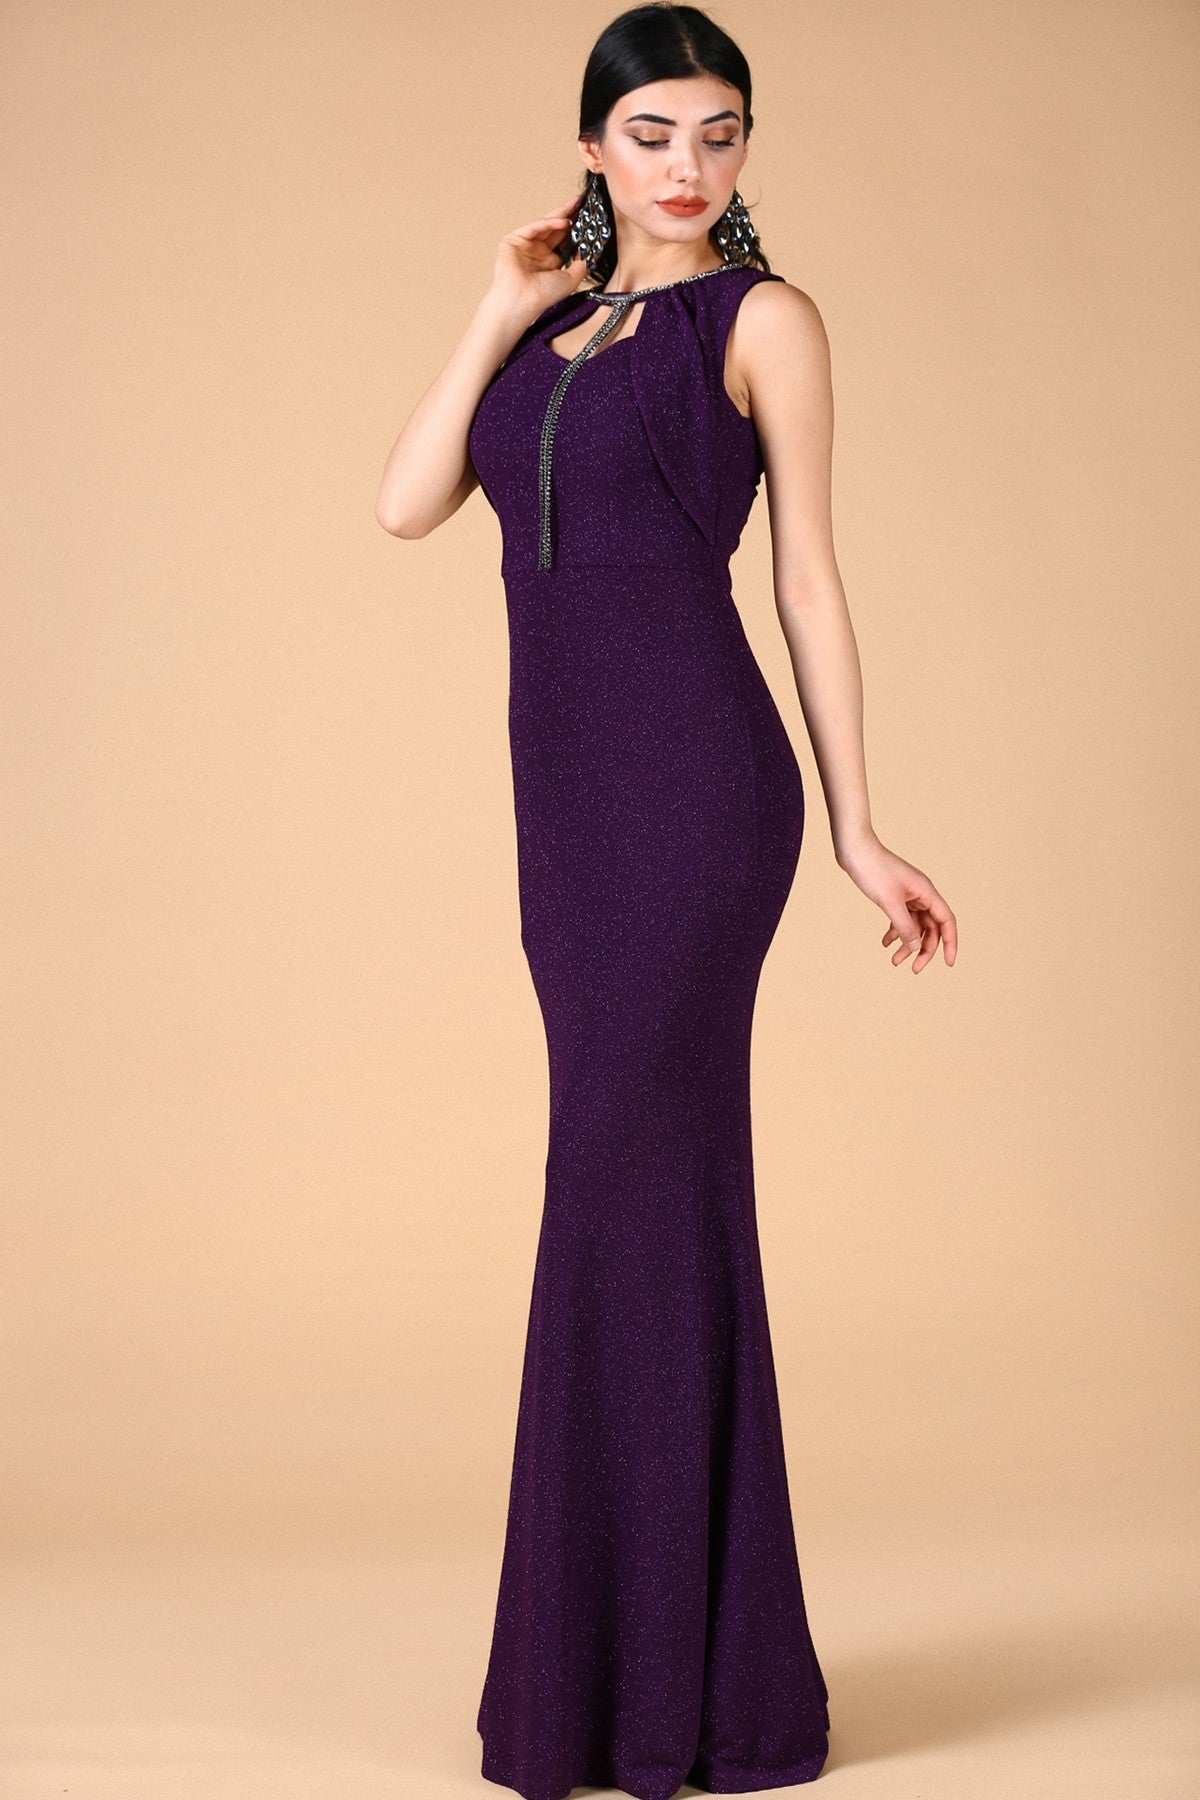 Silvery Dark Purple Evening Dress